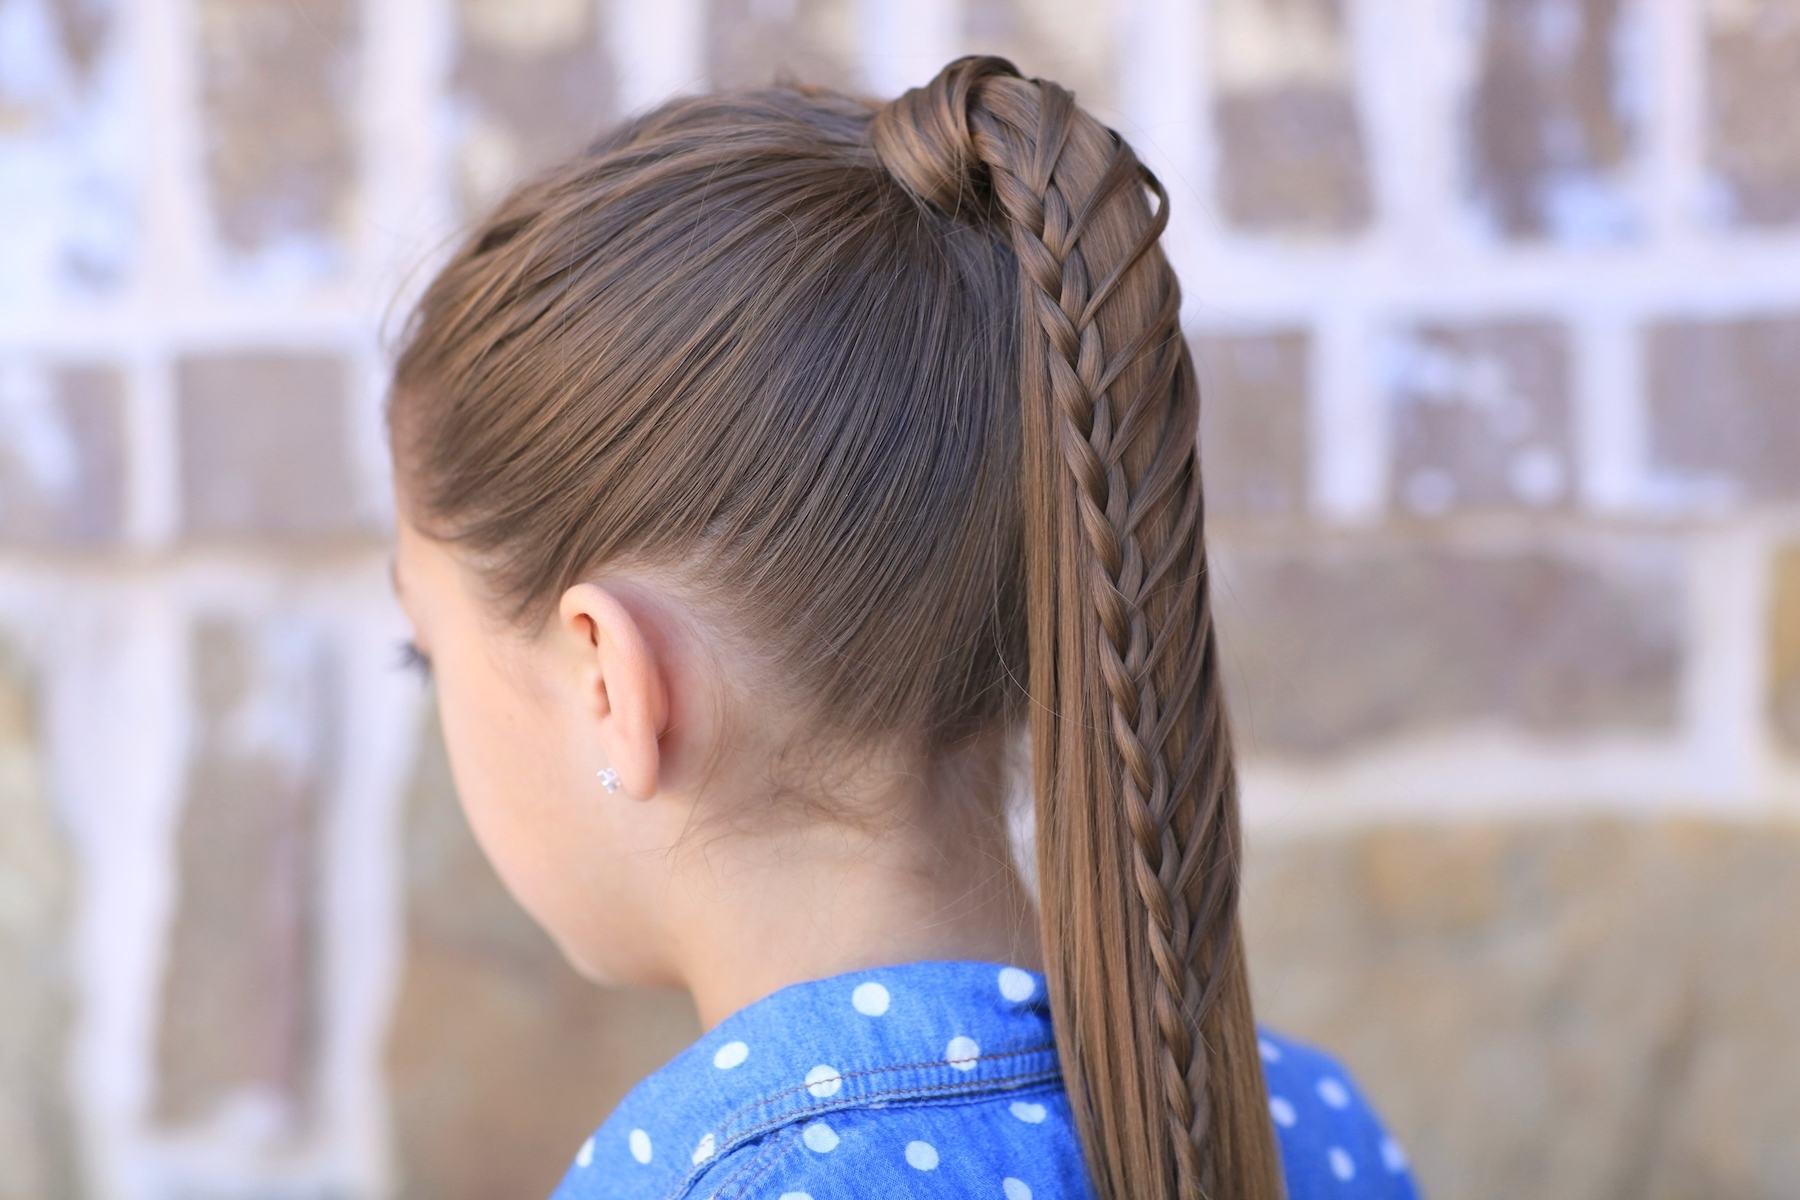 Ponytail Hairstyle Ideas For Teens (View 18 of 20)